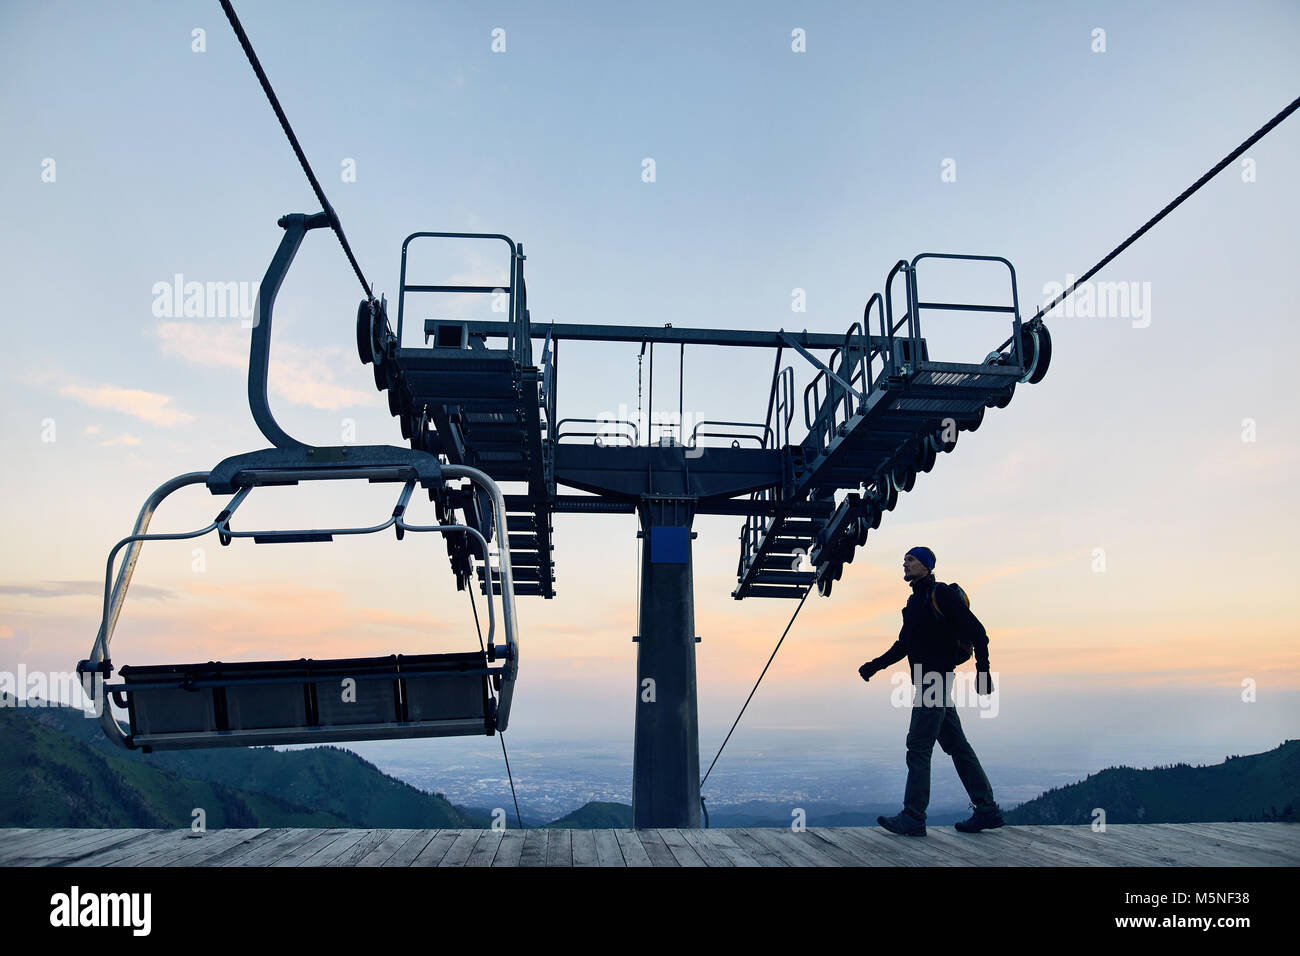 Touristische Mann am Ski Lift Station in Silhouette hoch in Mountain Ski Resort bei Sonnenaufgang Stockbild